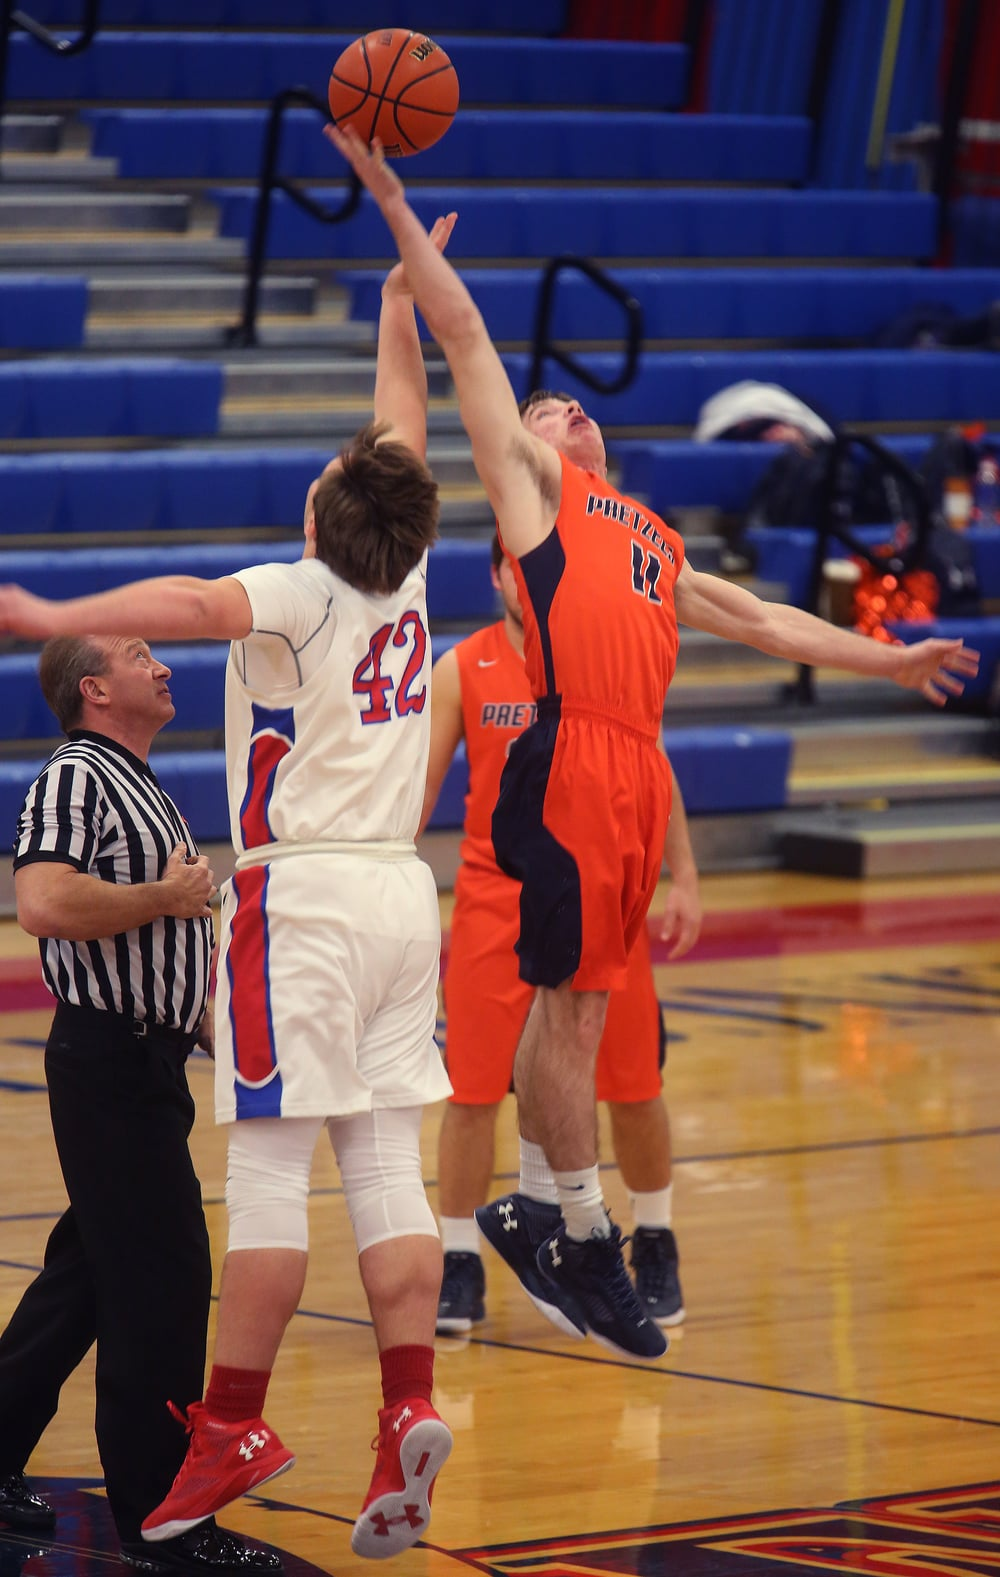 New Berlin's Josh Fuchs won the tipoff against Pleasant Plains player Nik Clemens. David Spencer/The State Journal Register